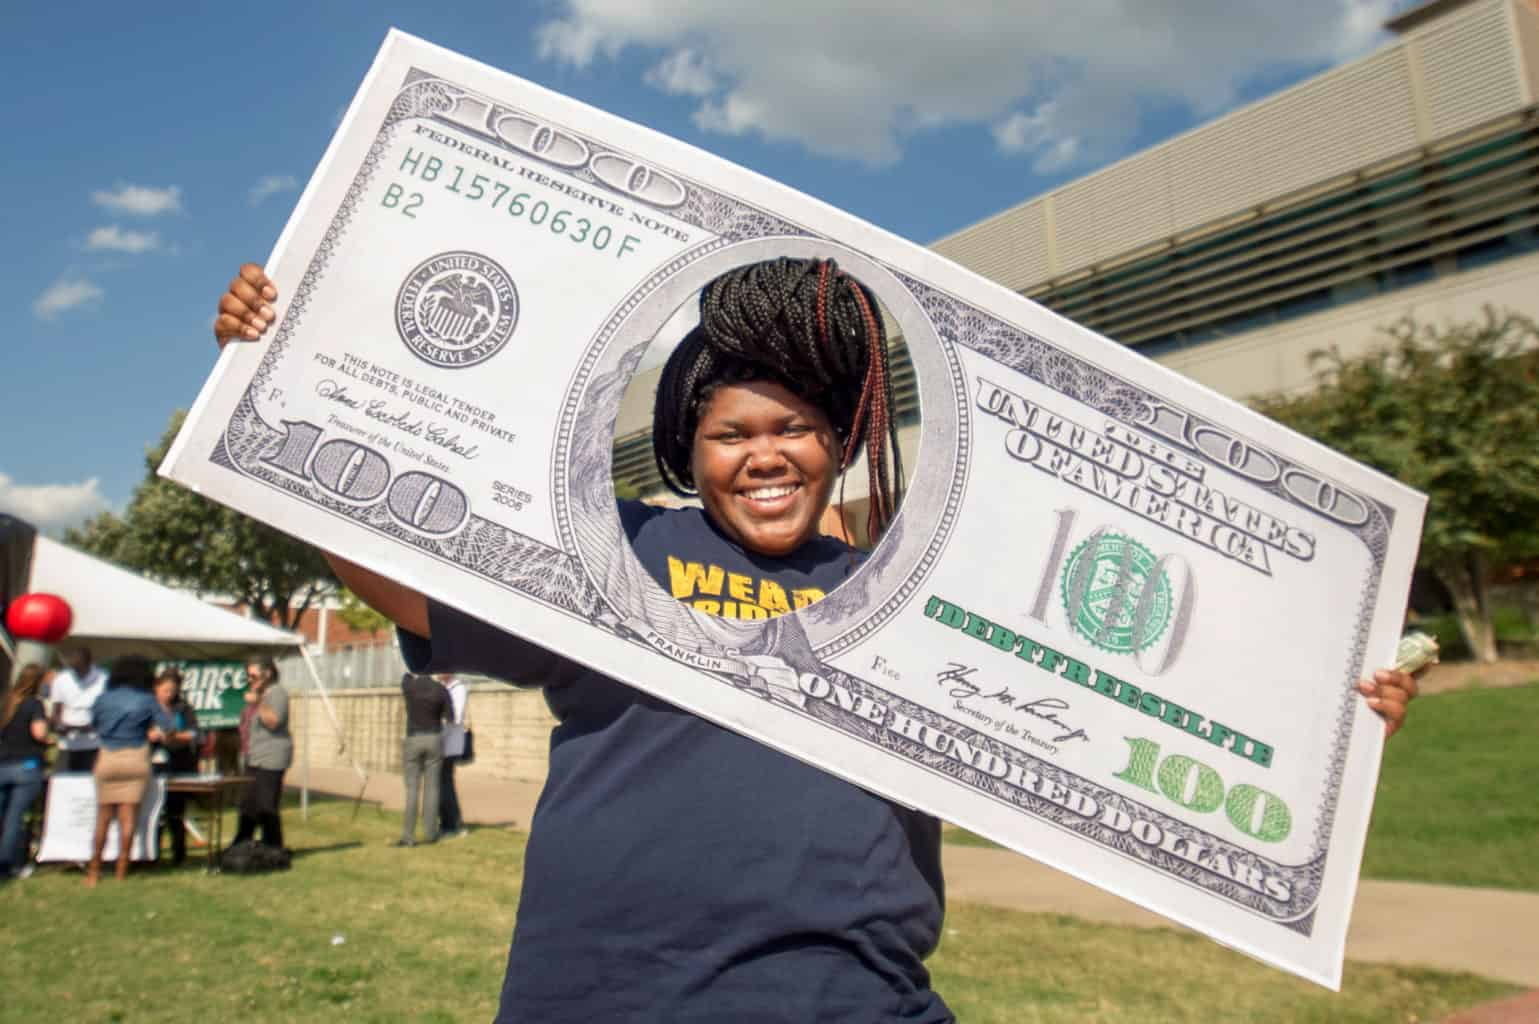 Female with her face inside of a giant one hundred dollar bill.